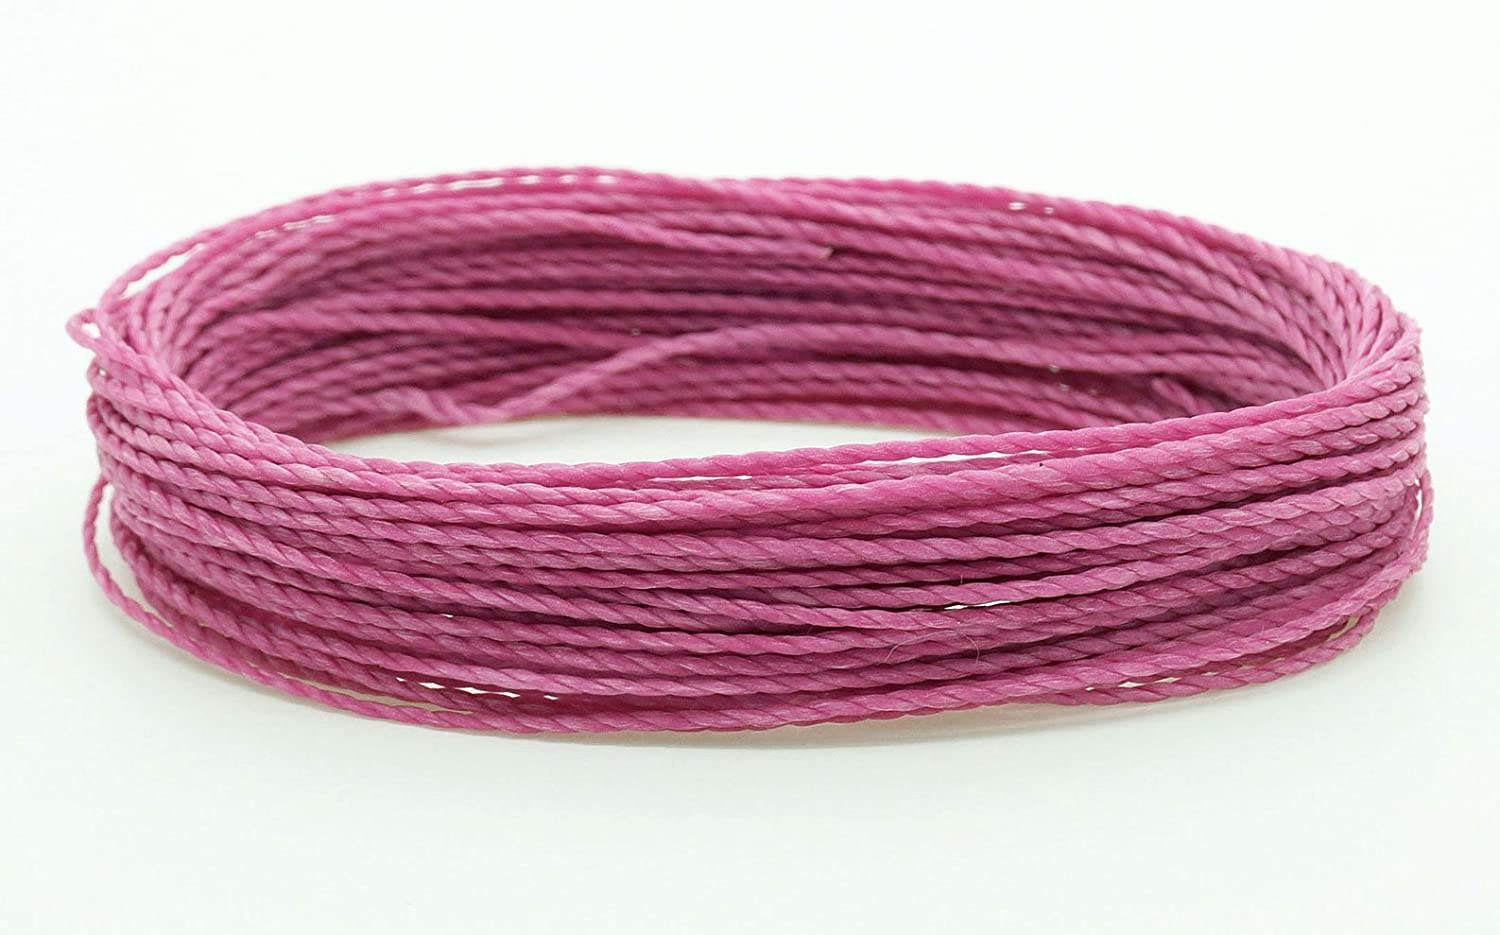 MINT 1mm Waxed Polyester Twisted Cord Macrame Bracelet Thread Artisan String 30yards Skein